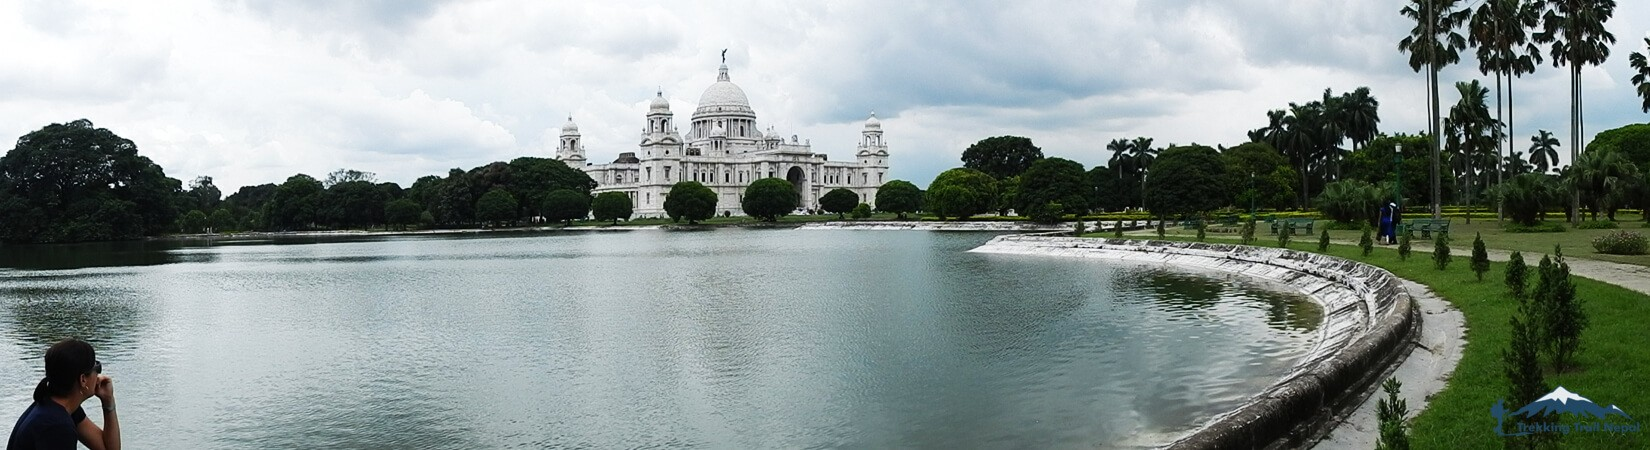 Place to Visit in India